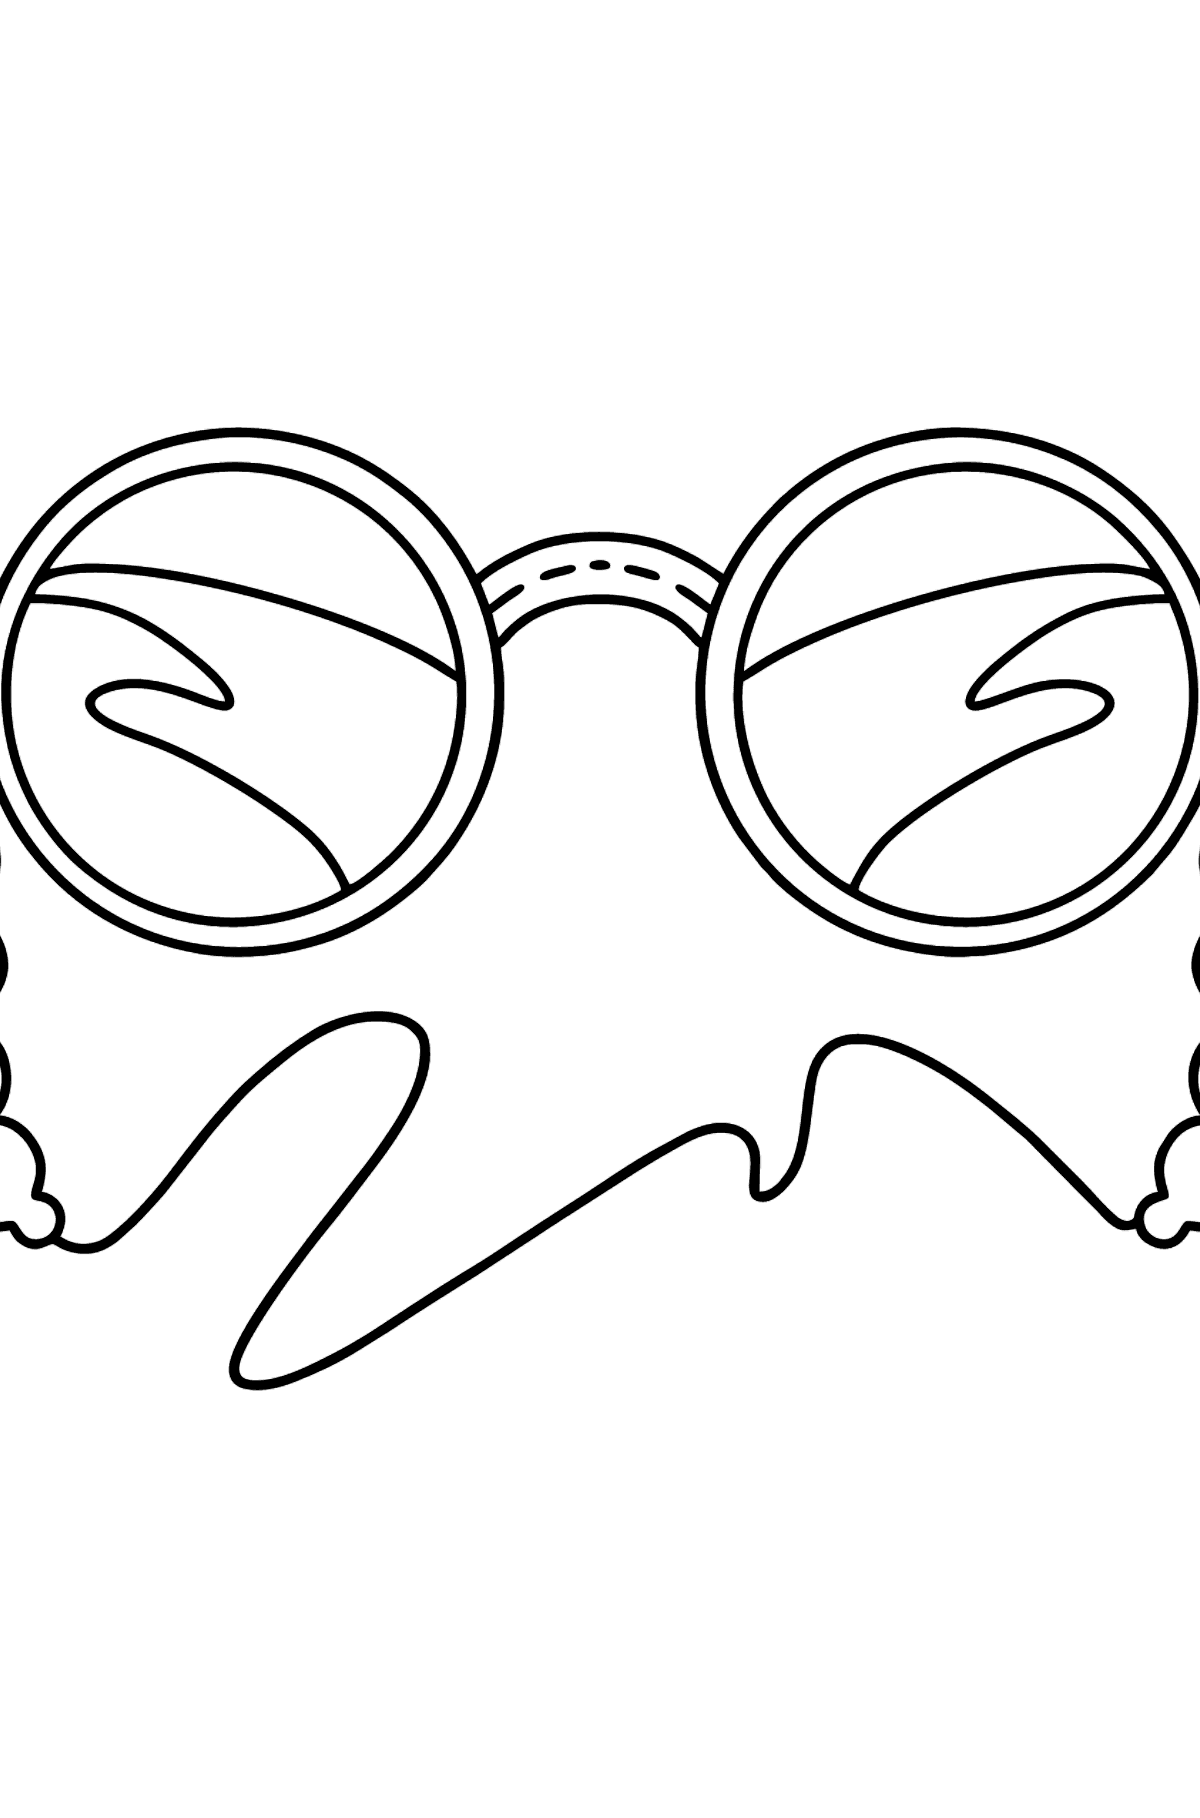 Sun glasses coloring page - Coloring Pages for Kids